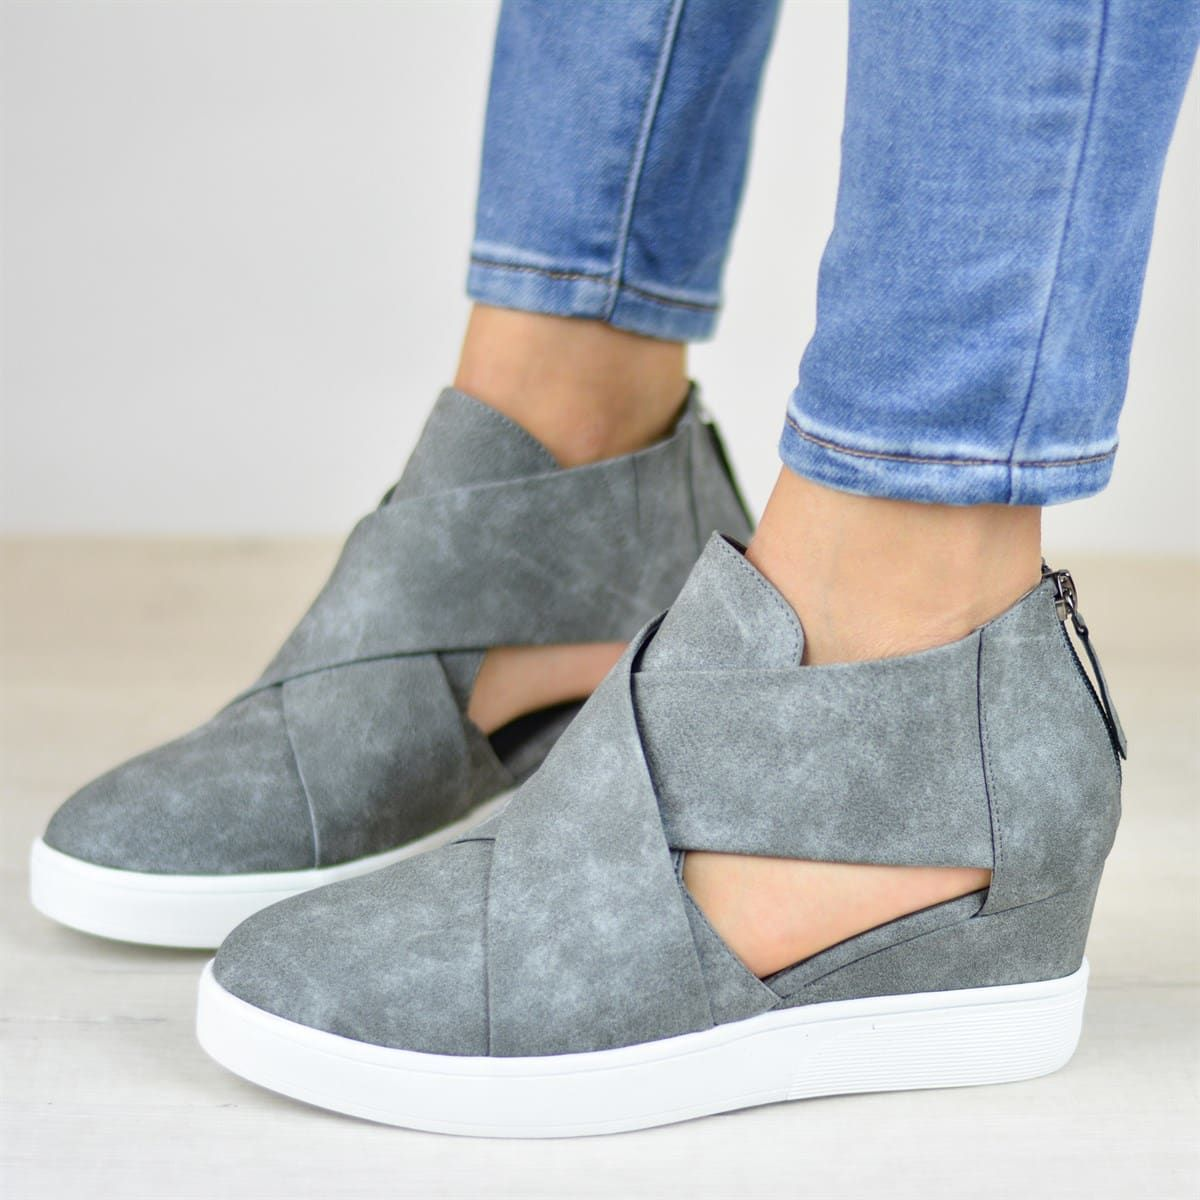 Wedge sneakers, Womens shoes wedges